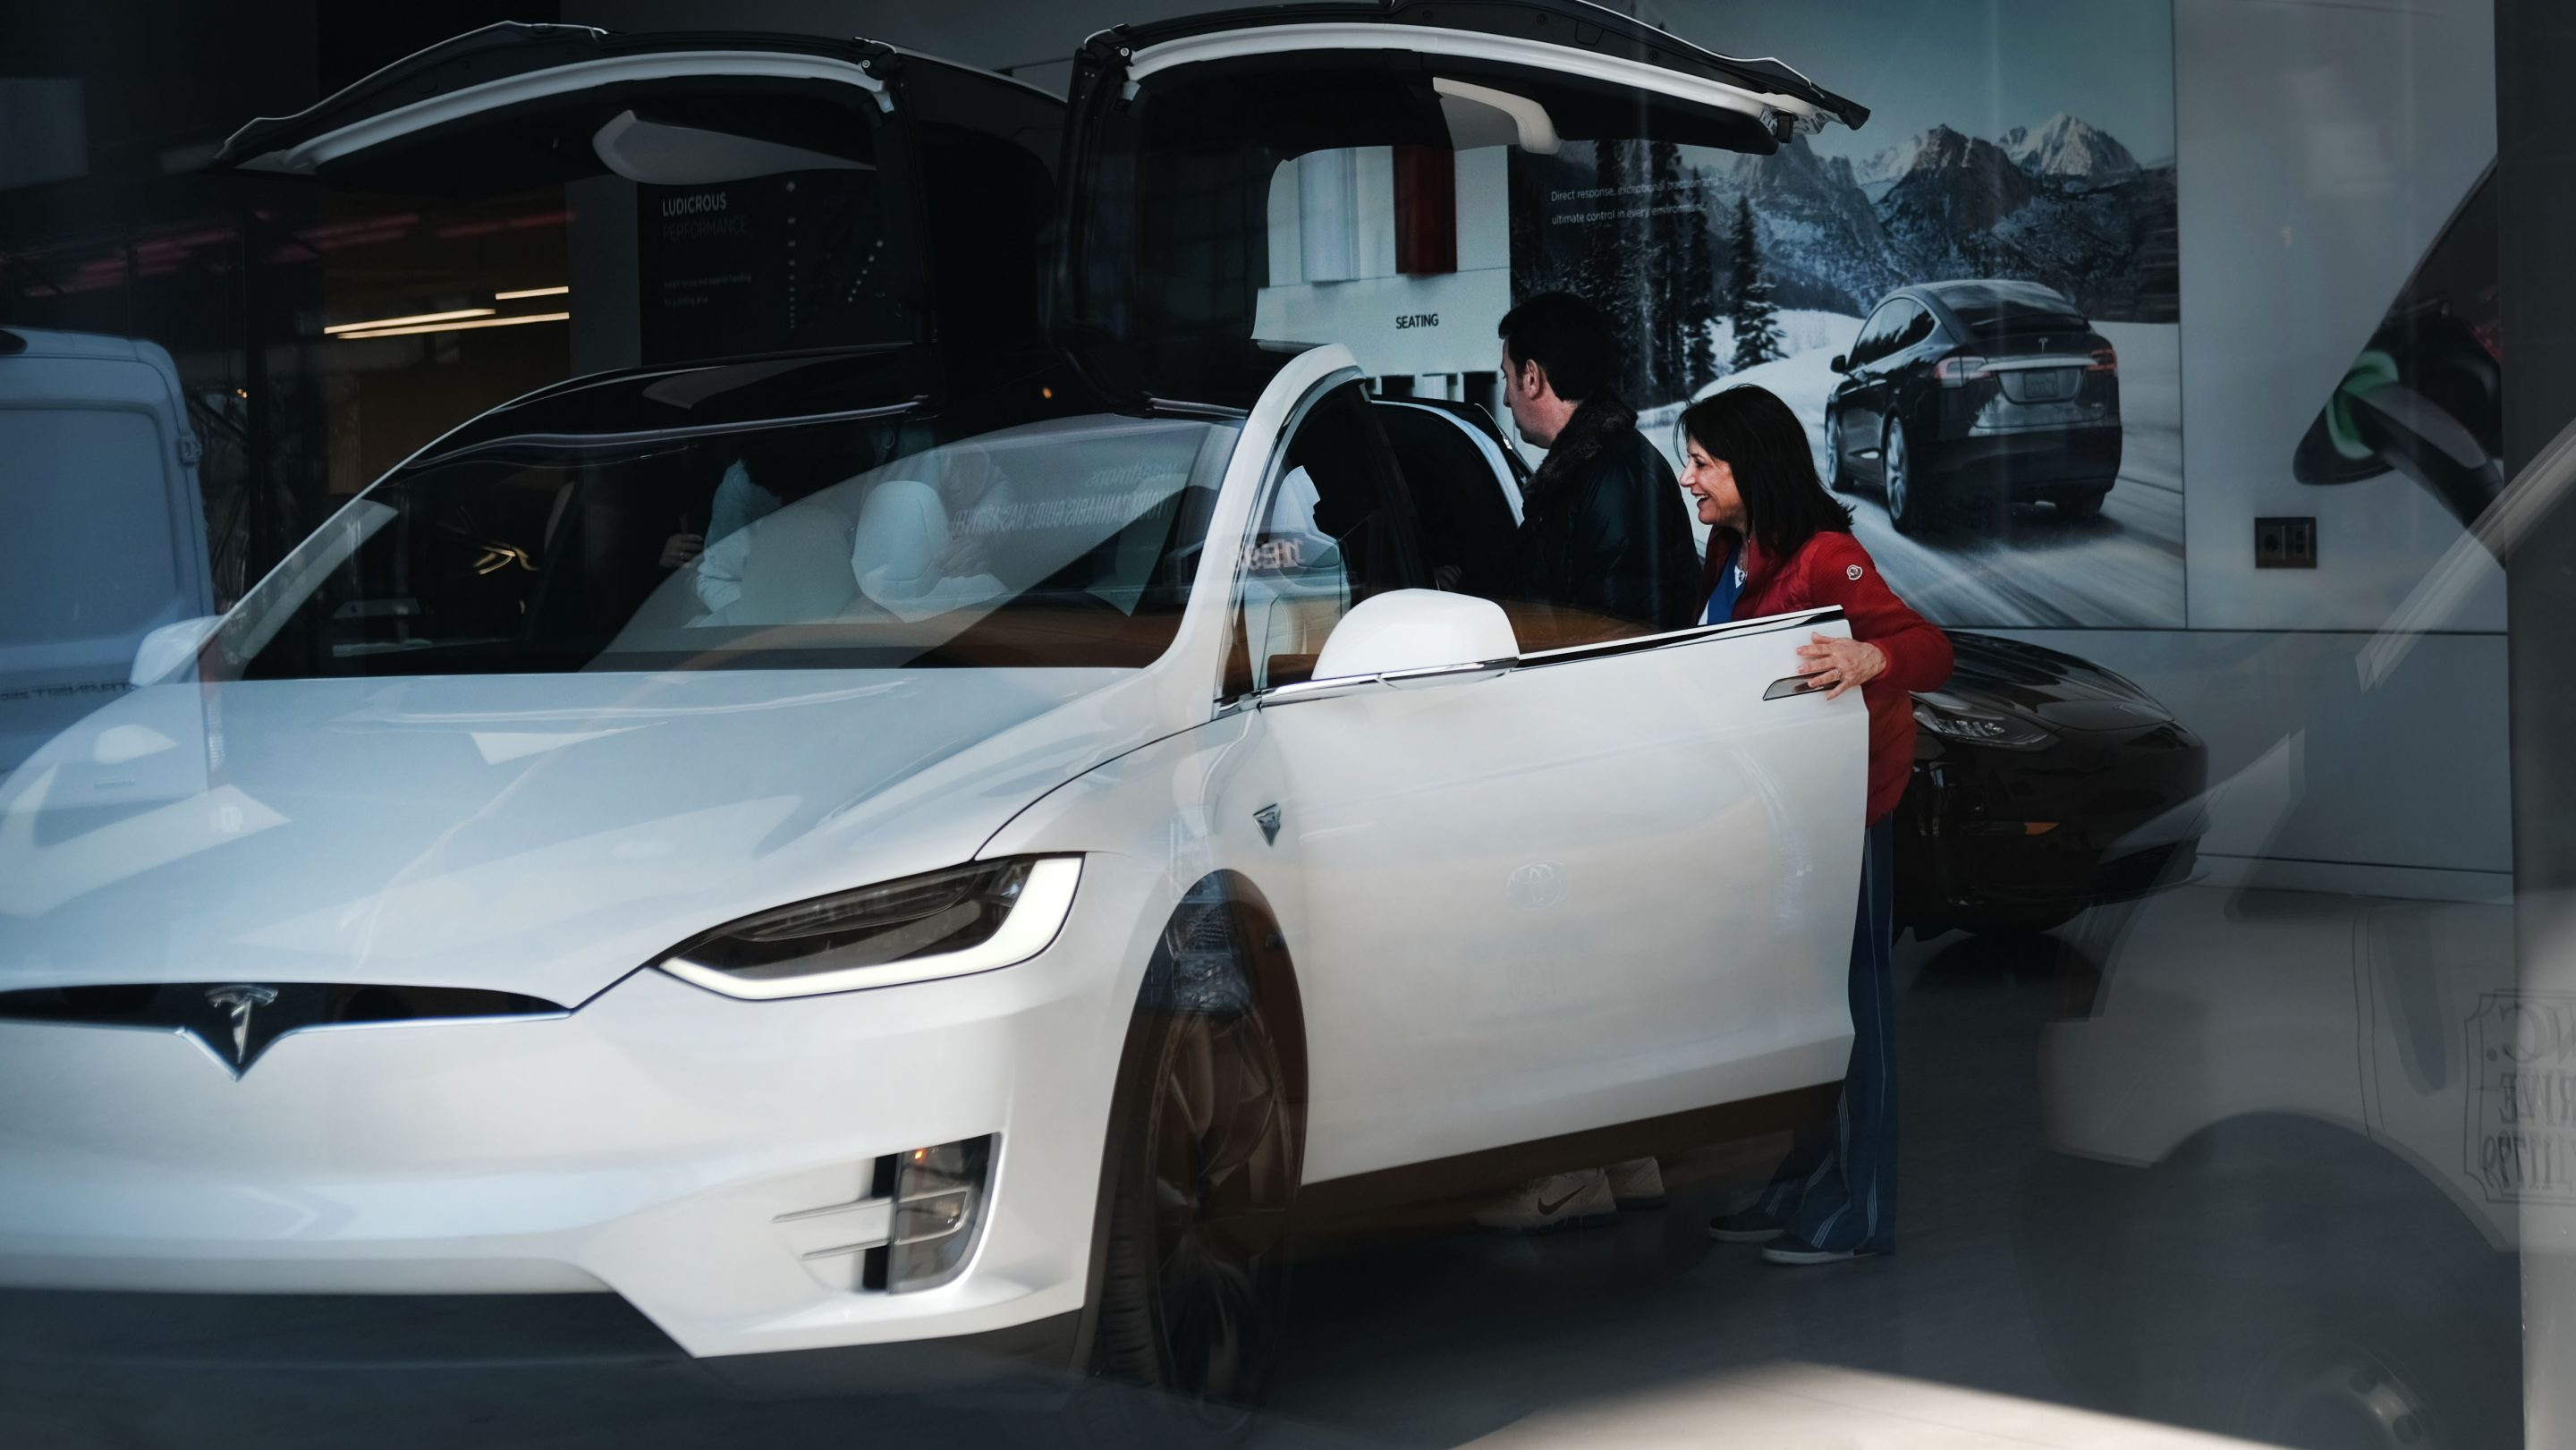 Tesla stock (TSLA) rose after its vehicle deliveries surpassed 95,000 in the second quarter while production levels rose to 87,000.